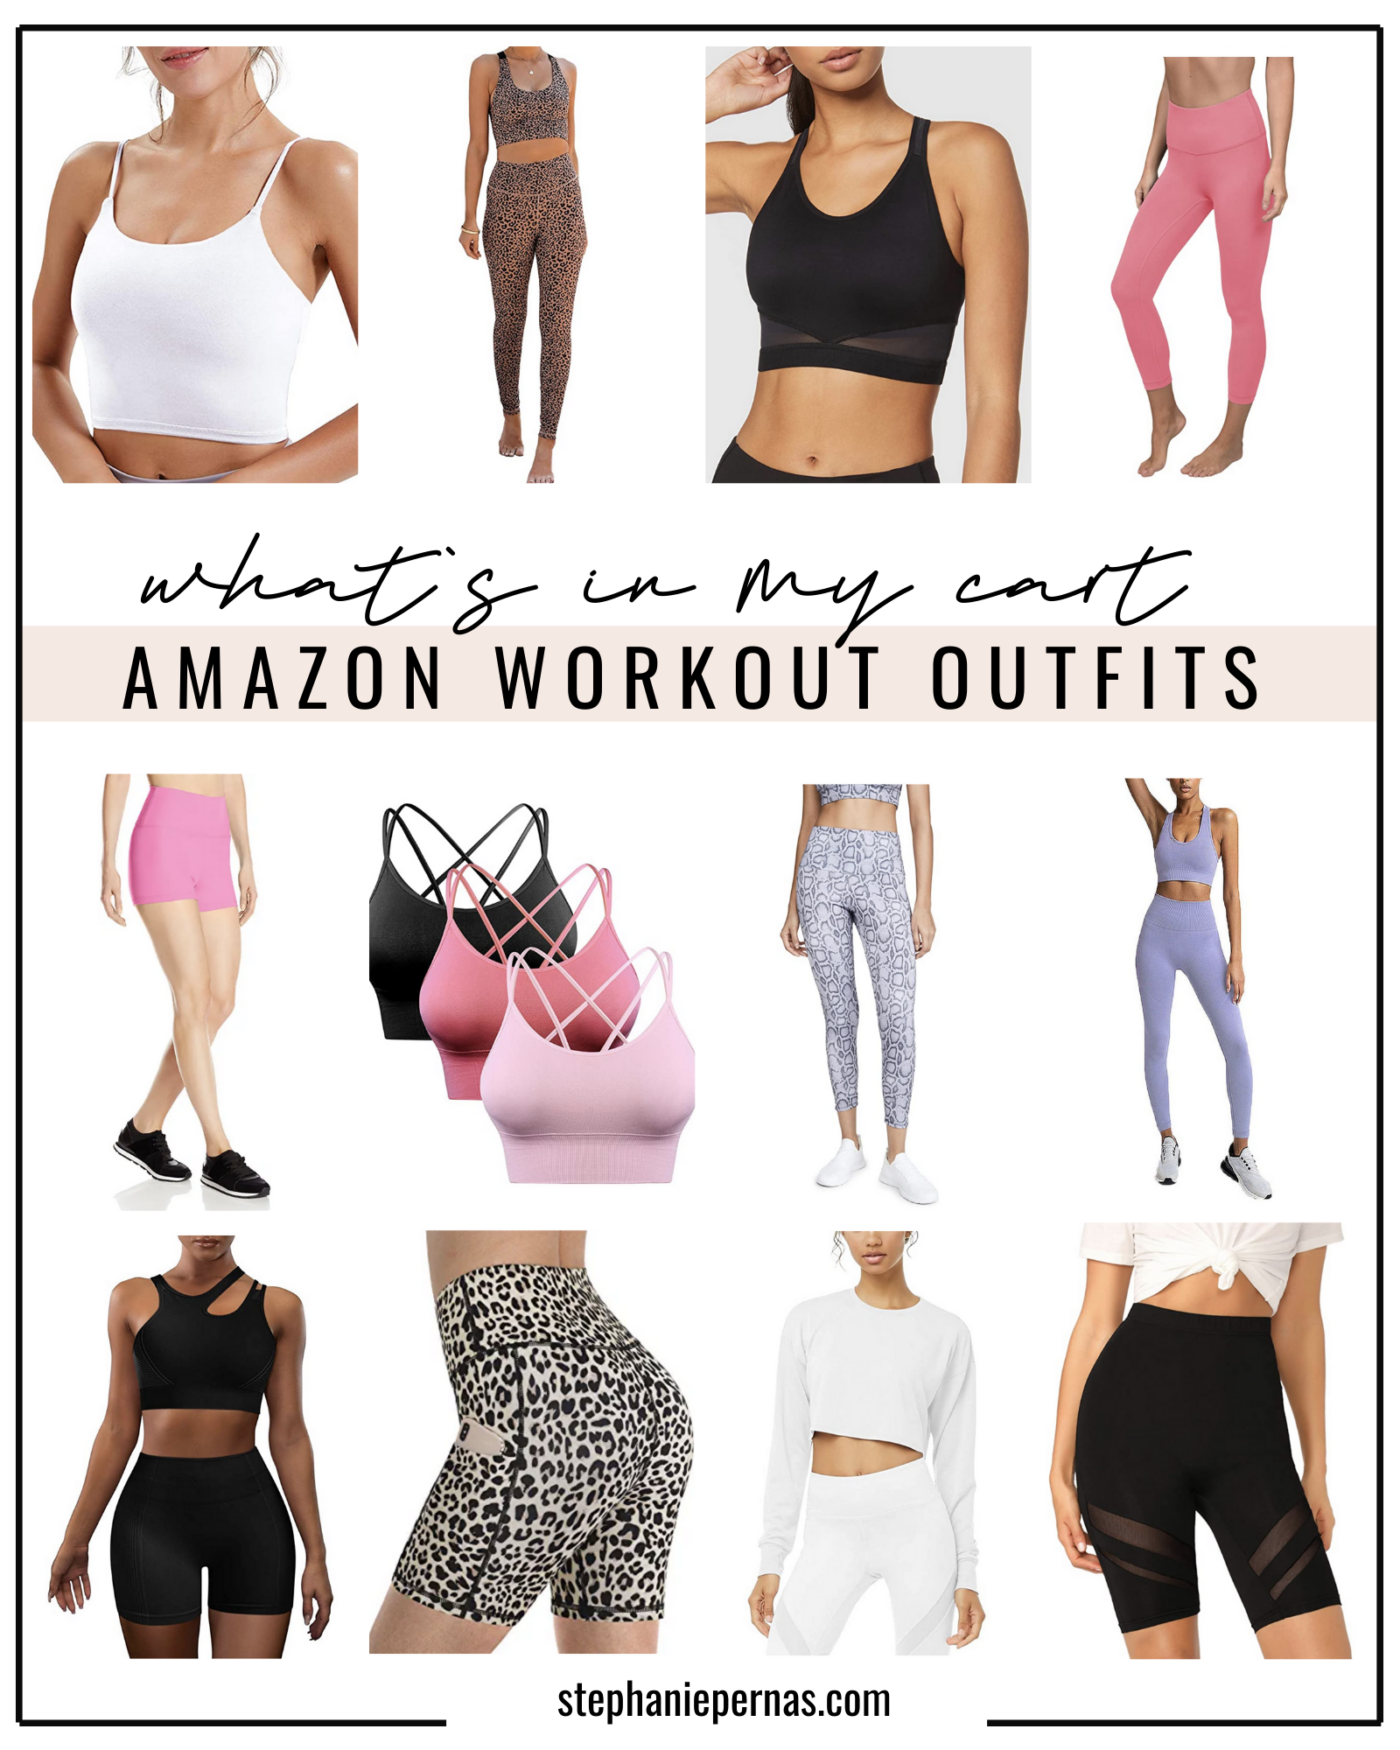 Cute Amazon athleticwear for women